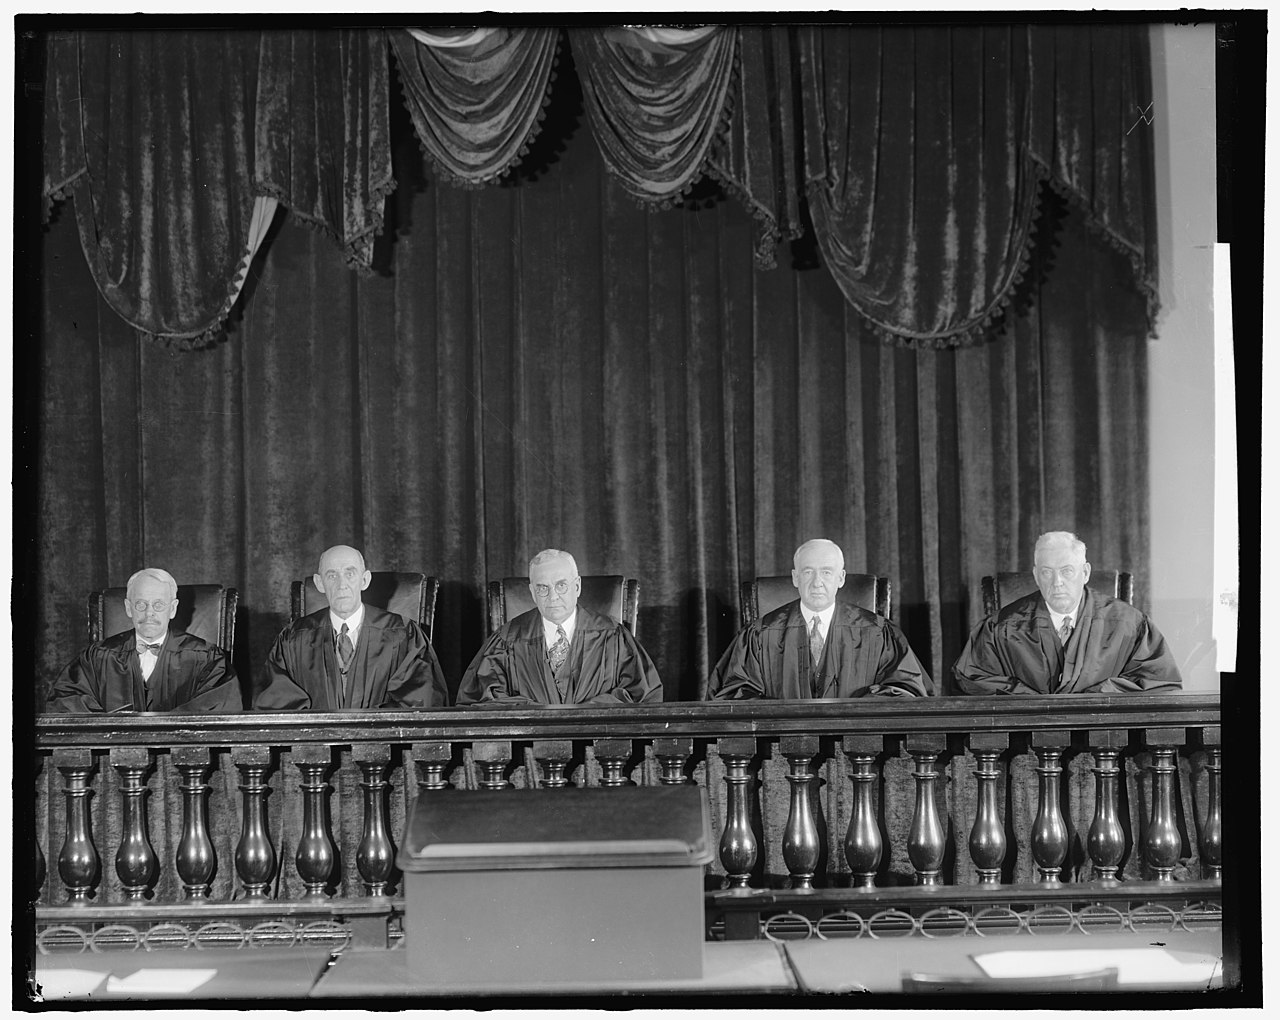 U.S. Court of Claims, Library of Congress